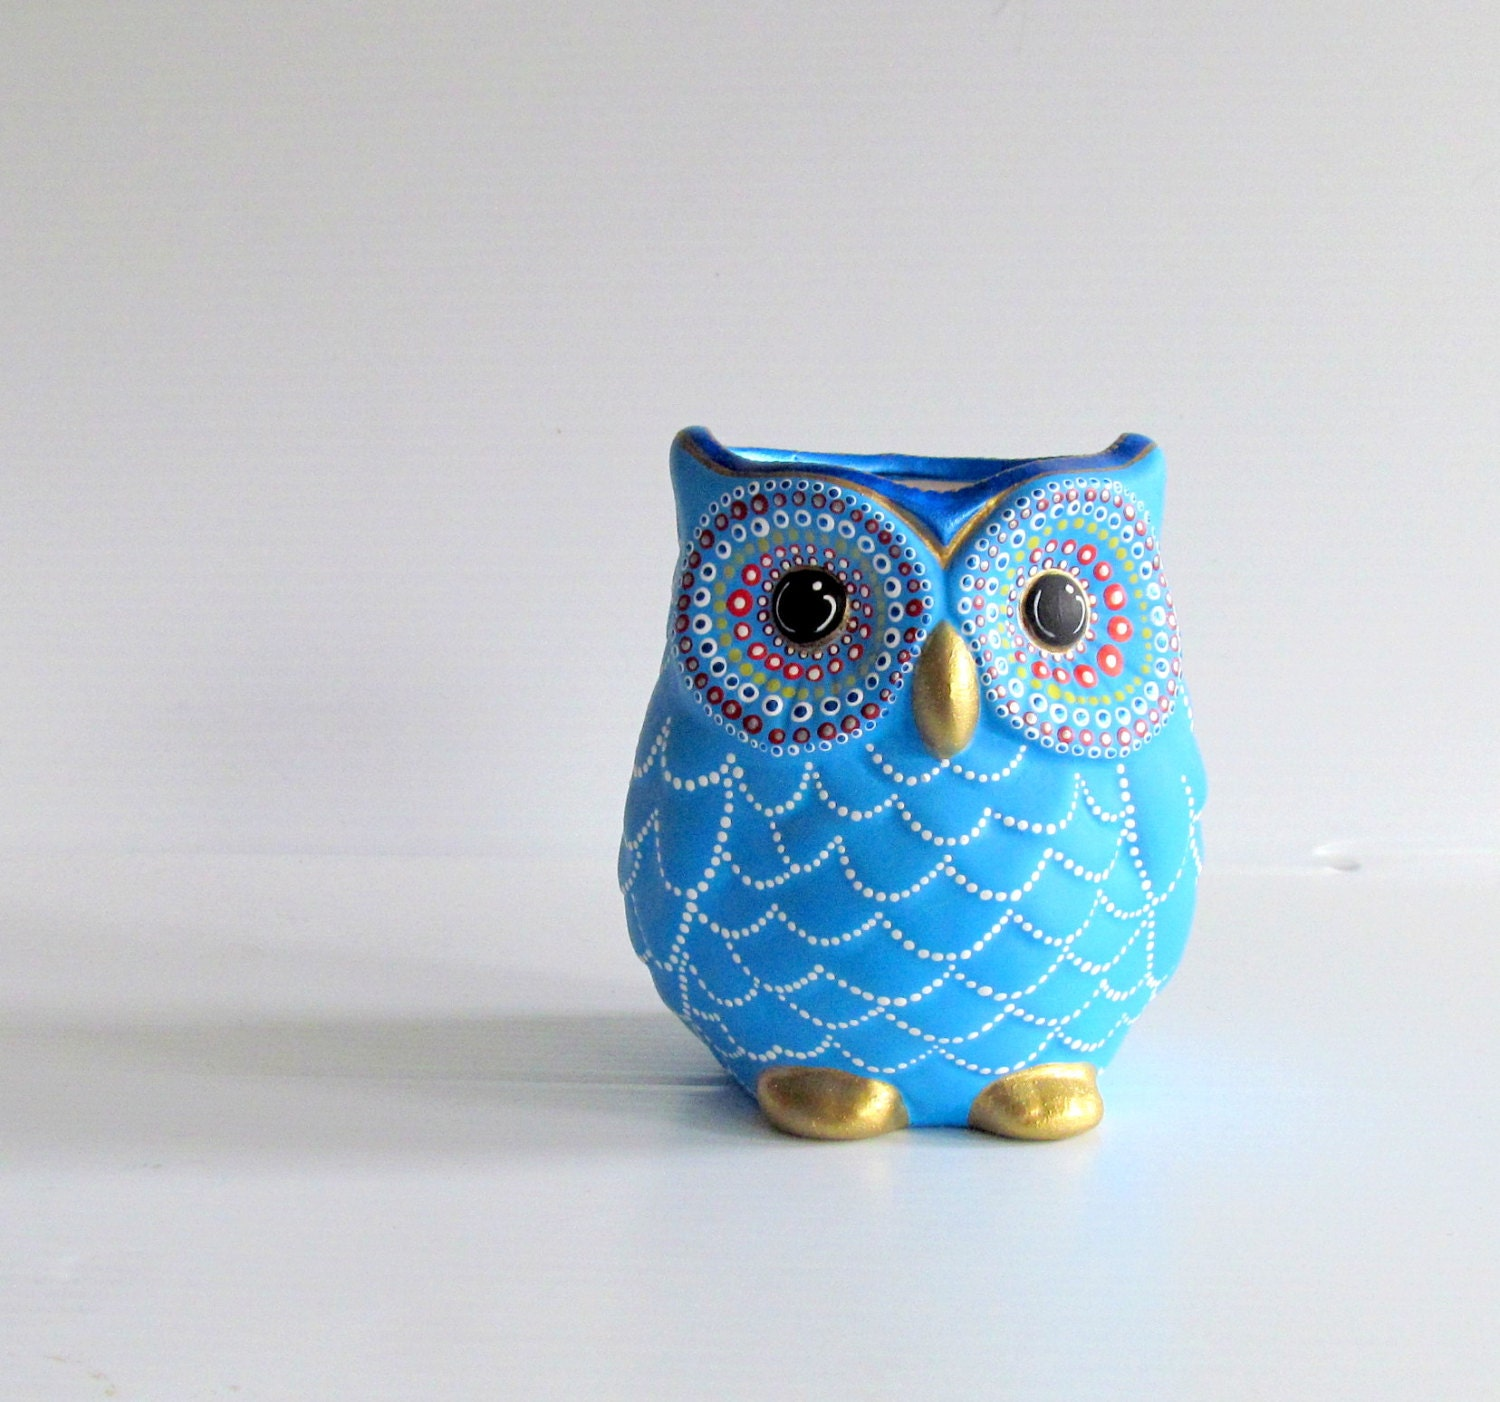 Blue Owl Vase Small Hand Painted Ceramic Owl Vase Or Pencil